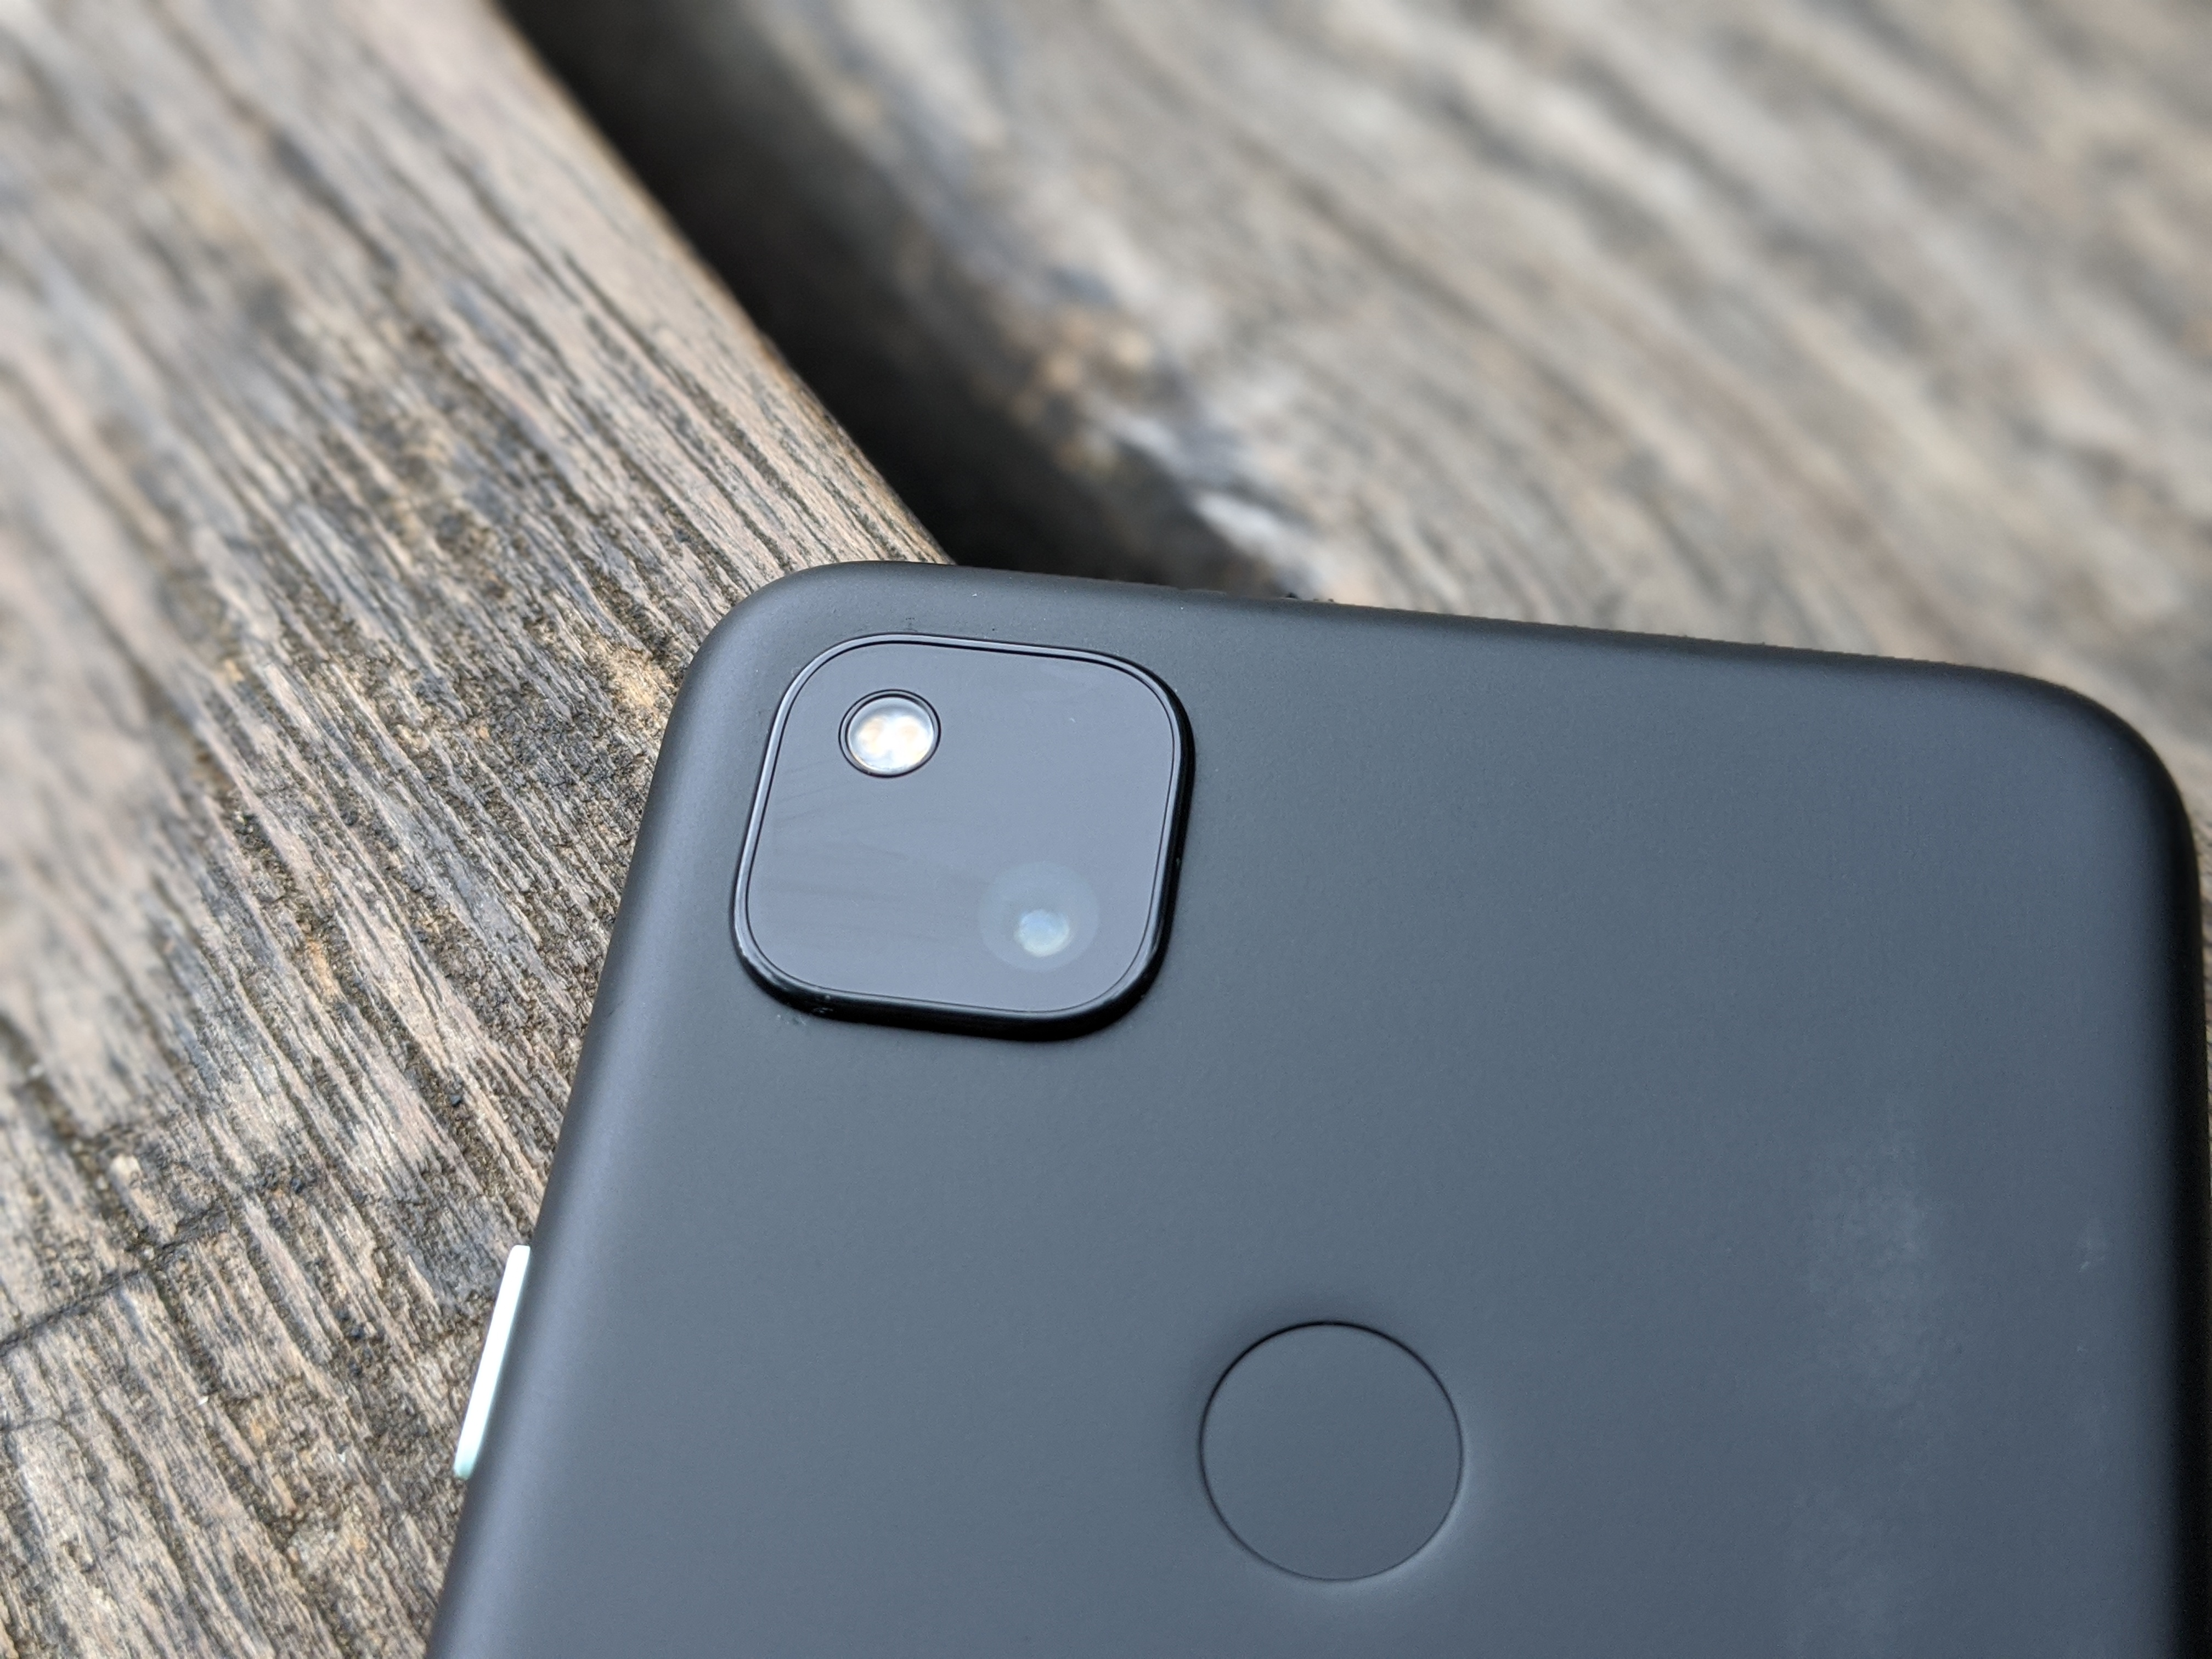 Pixel 4a gives Google fans the flawless mid-range smartphone